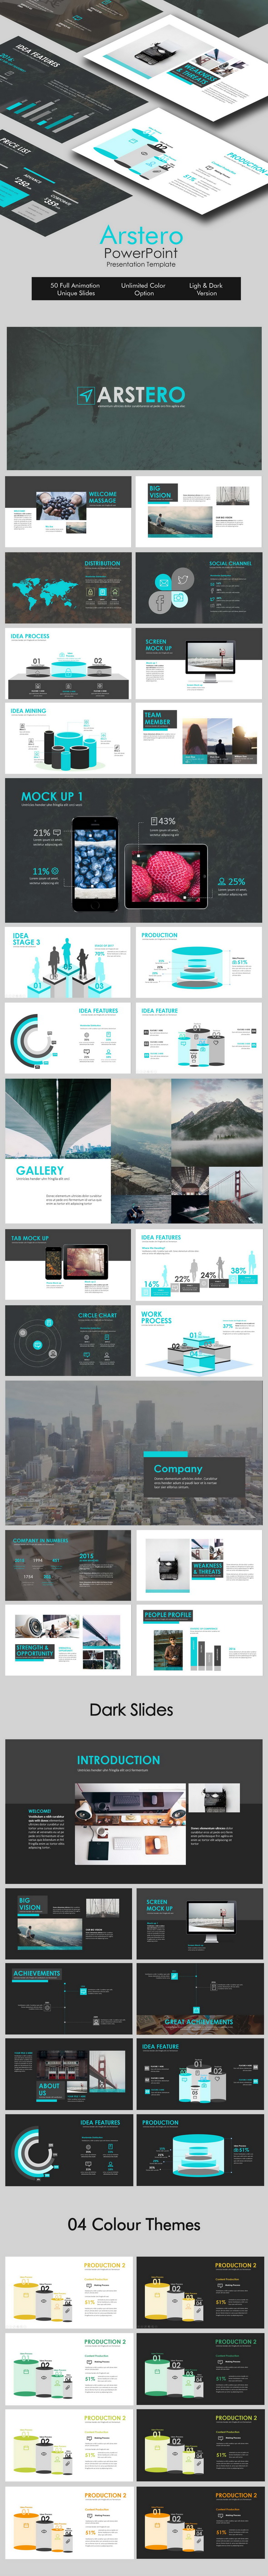 Astero Powerpoint Template - Business PowerPoint Templates